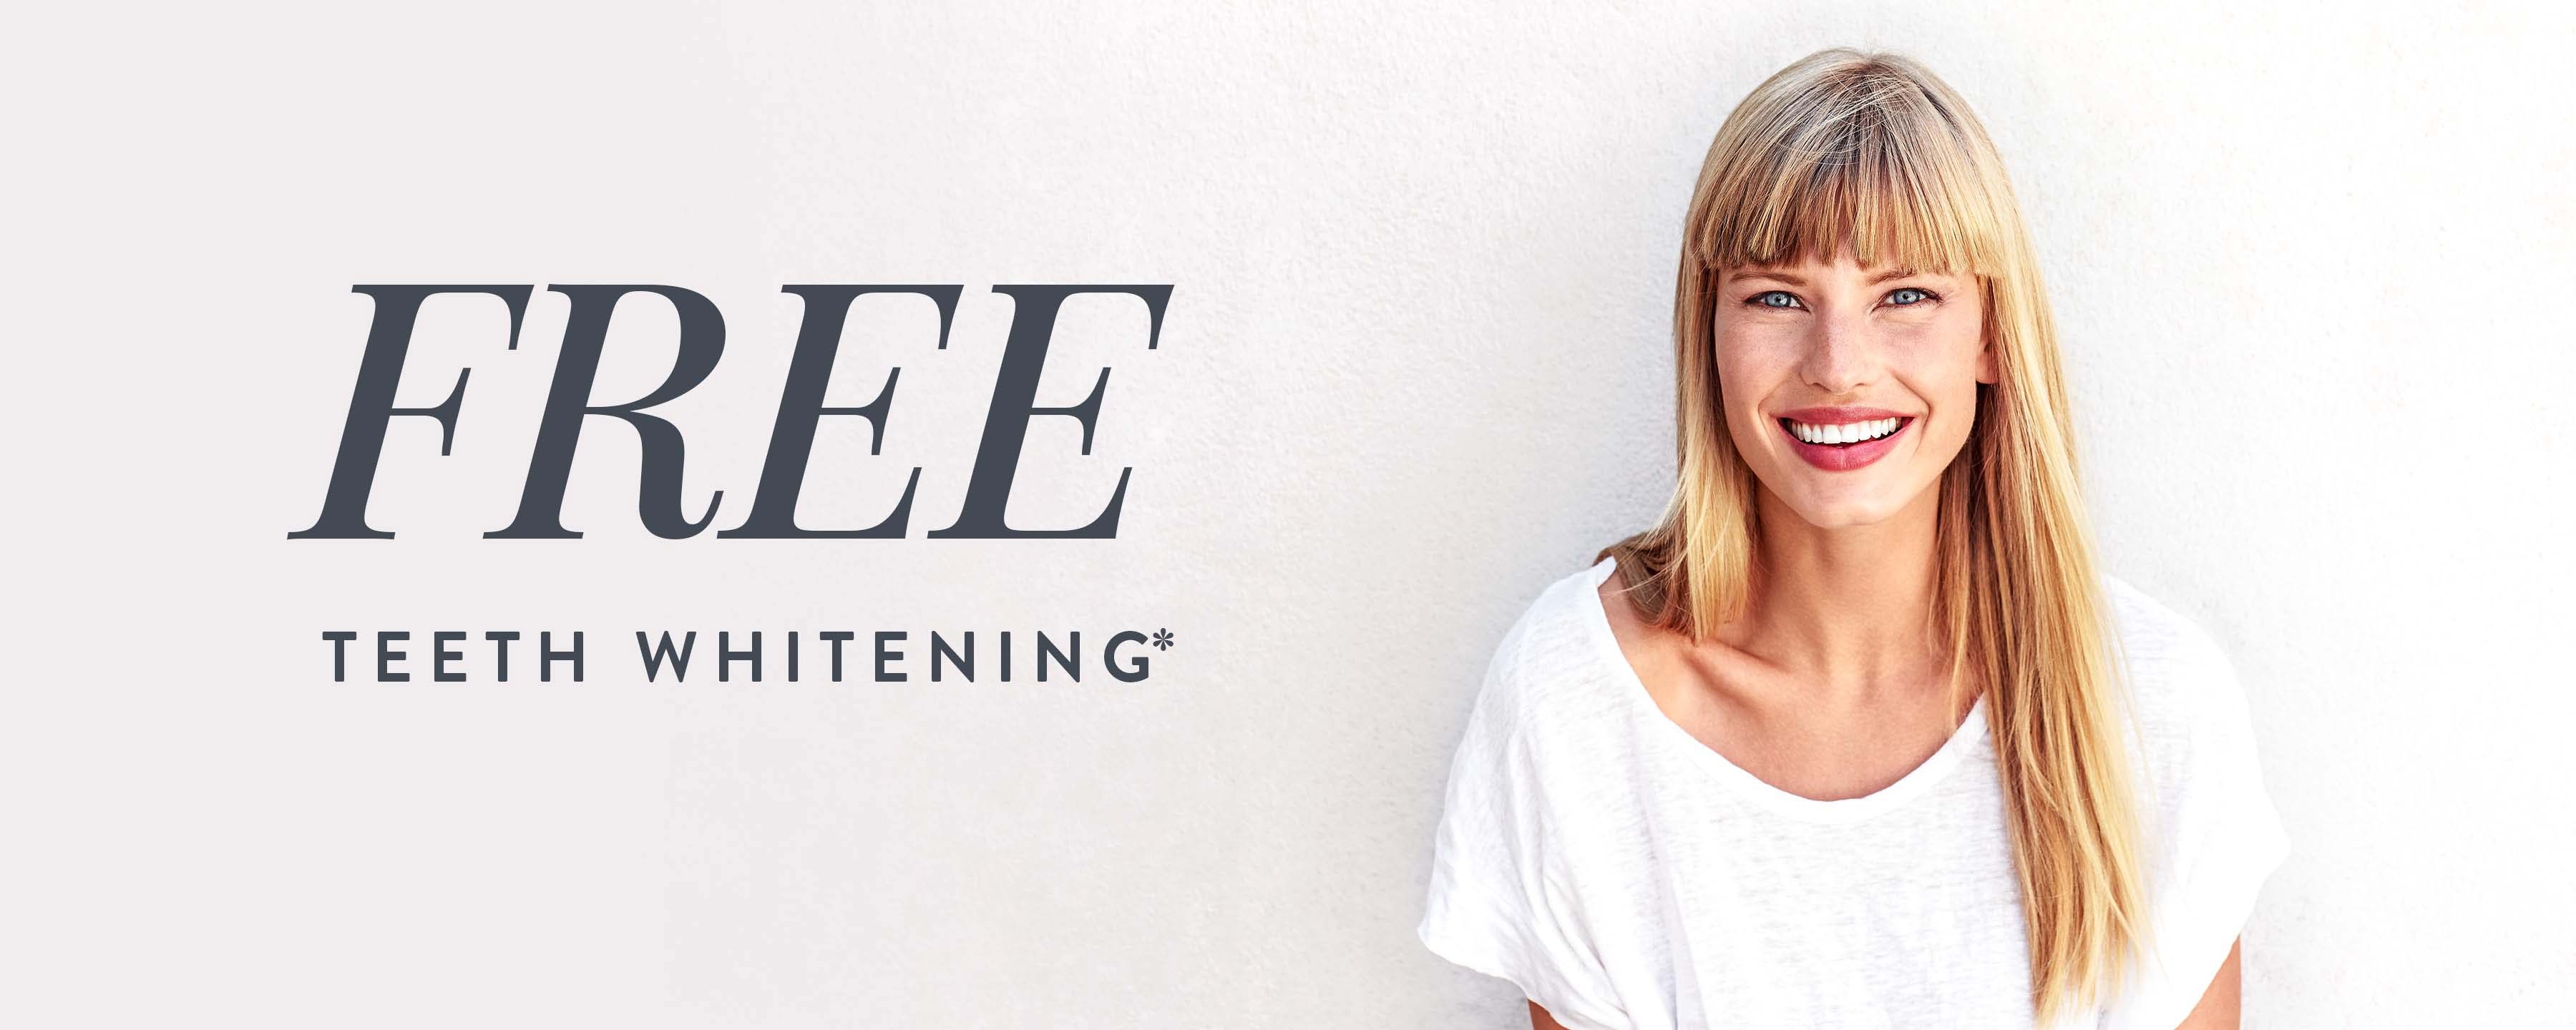 Free Teeth Whitening*